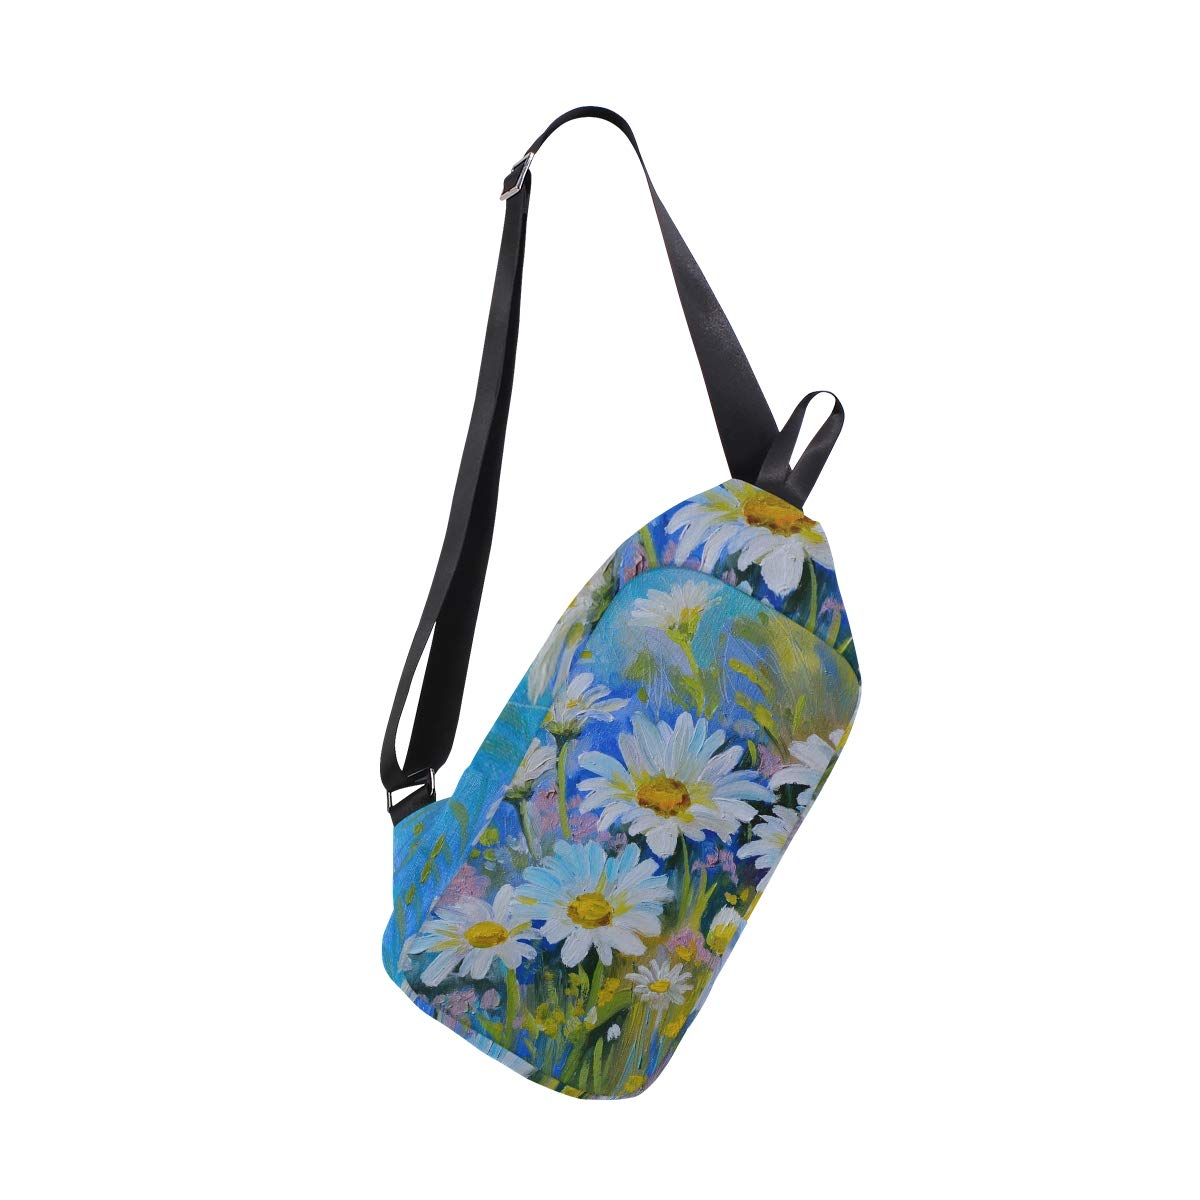 TFONE Watercolor Art Daisy Floral Crossbody Bag Lightweight Chest Shoulder Messenger Pack Backpack Sling Bag